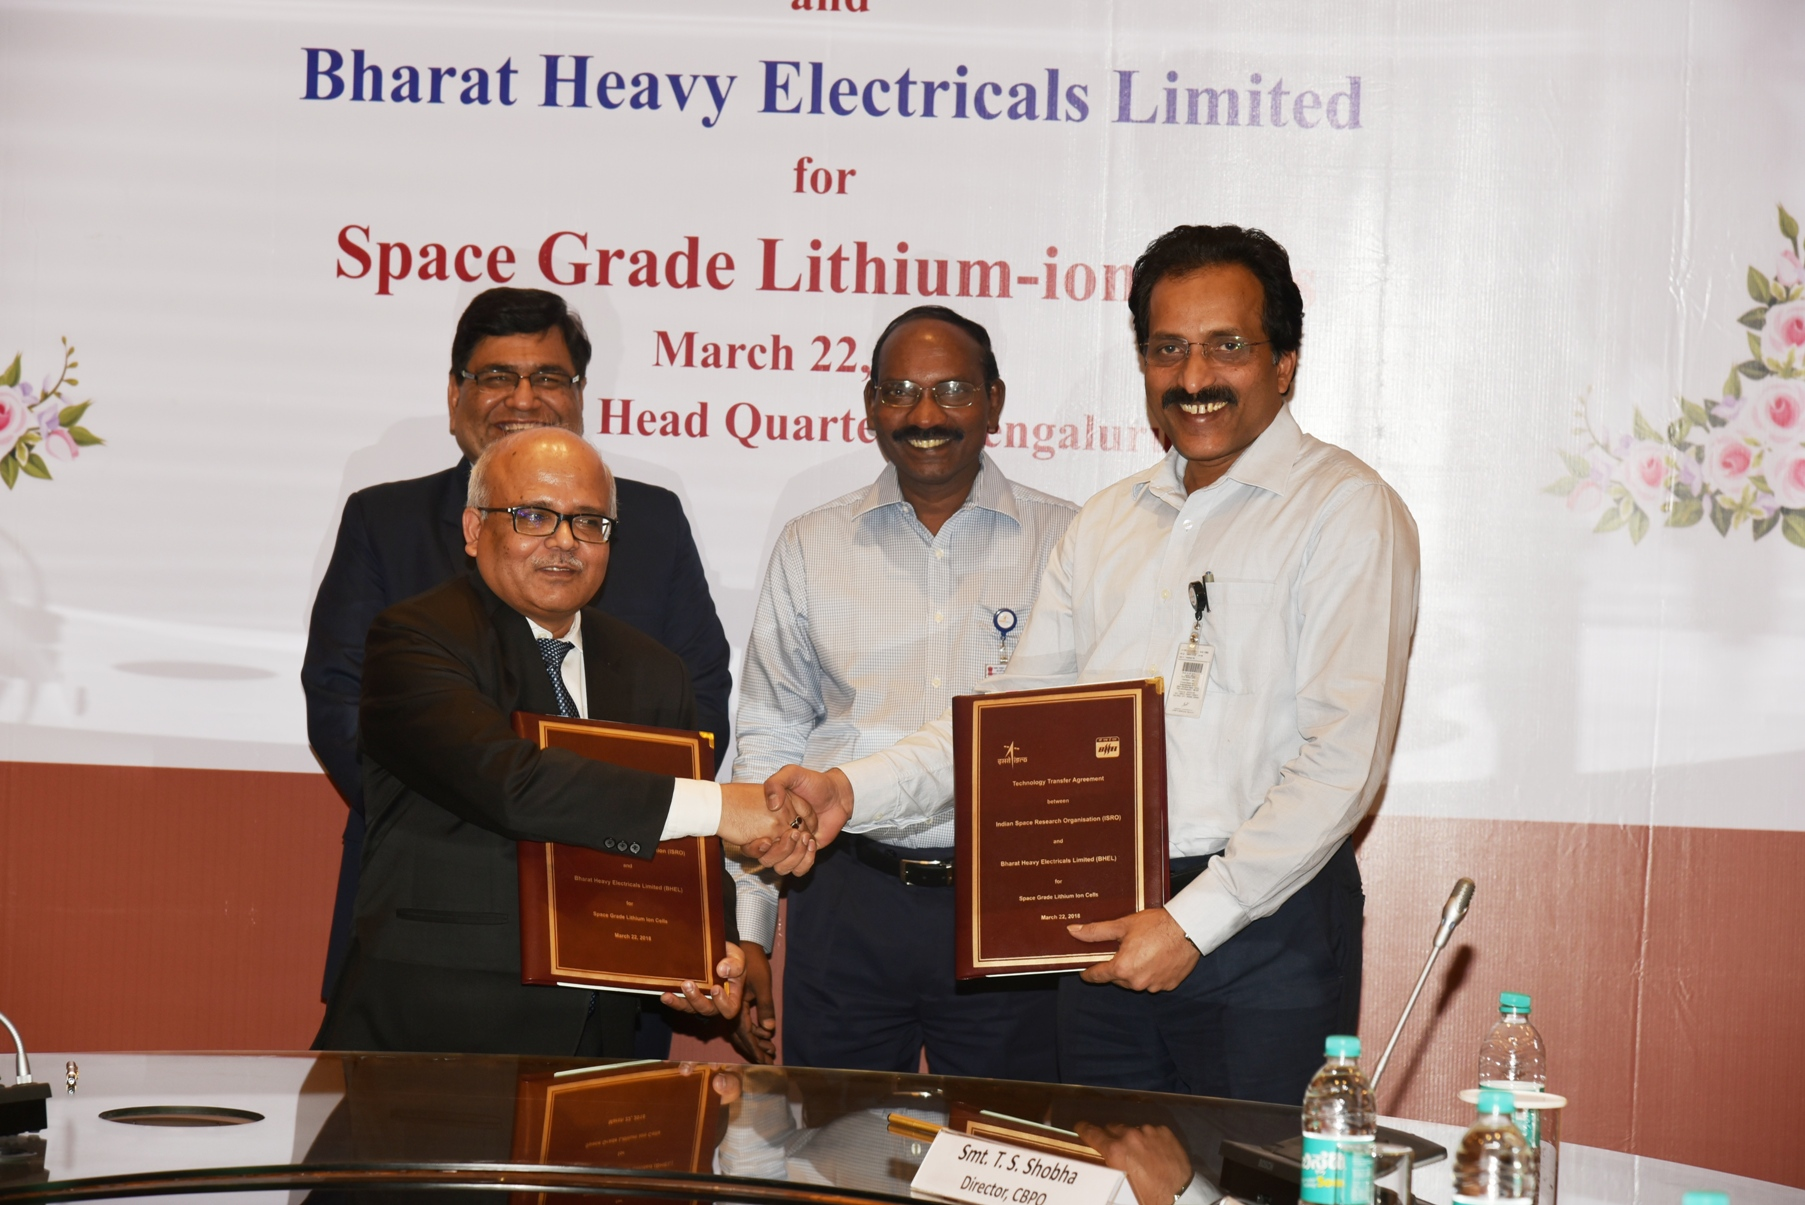 TTA Signing ceremony in presence of Mr Atul Sobti, CMD, BHEL and Dr K Sivan, Chairman, ISRO